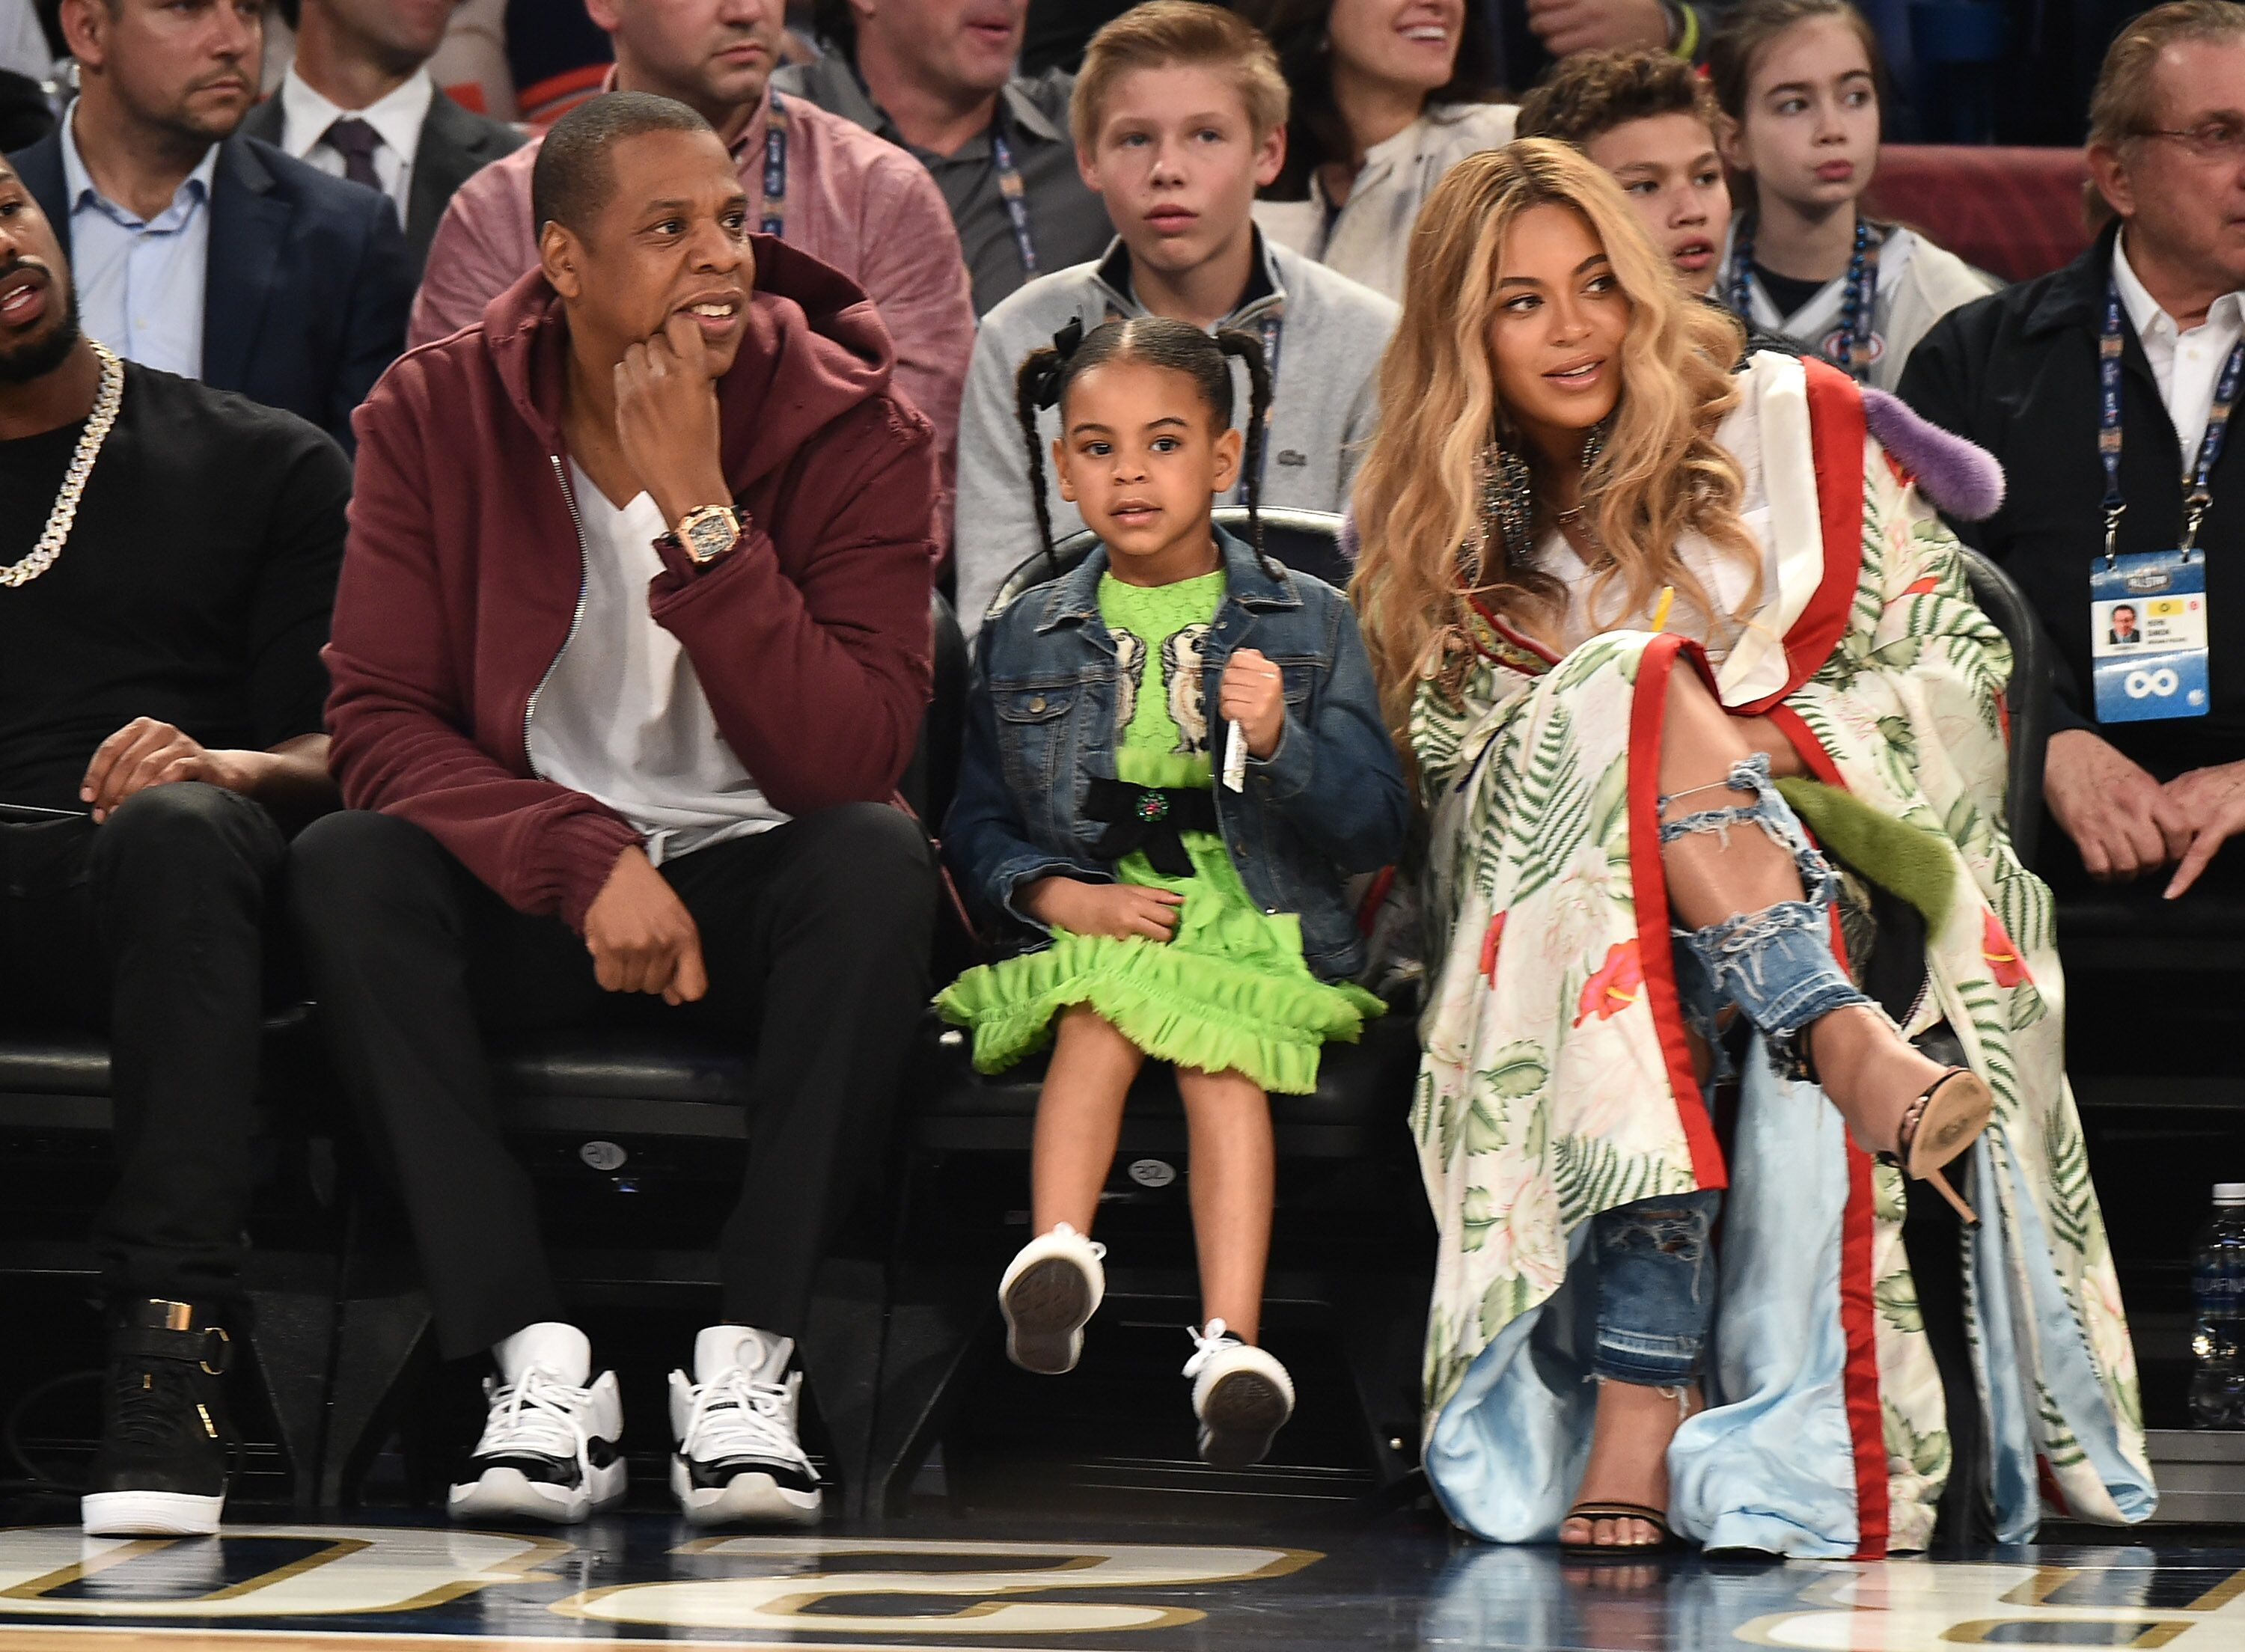 Jay-Z, Beyonce, and Blue Ivy attend a basketball game | Source: Getty Images/GlobalImagesUkraine